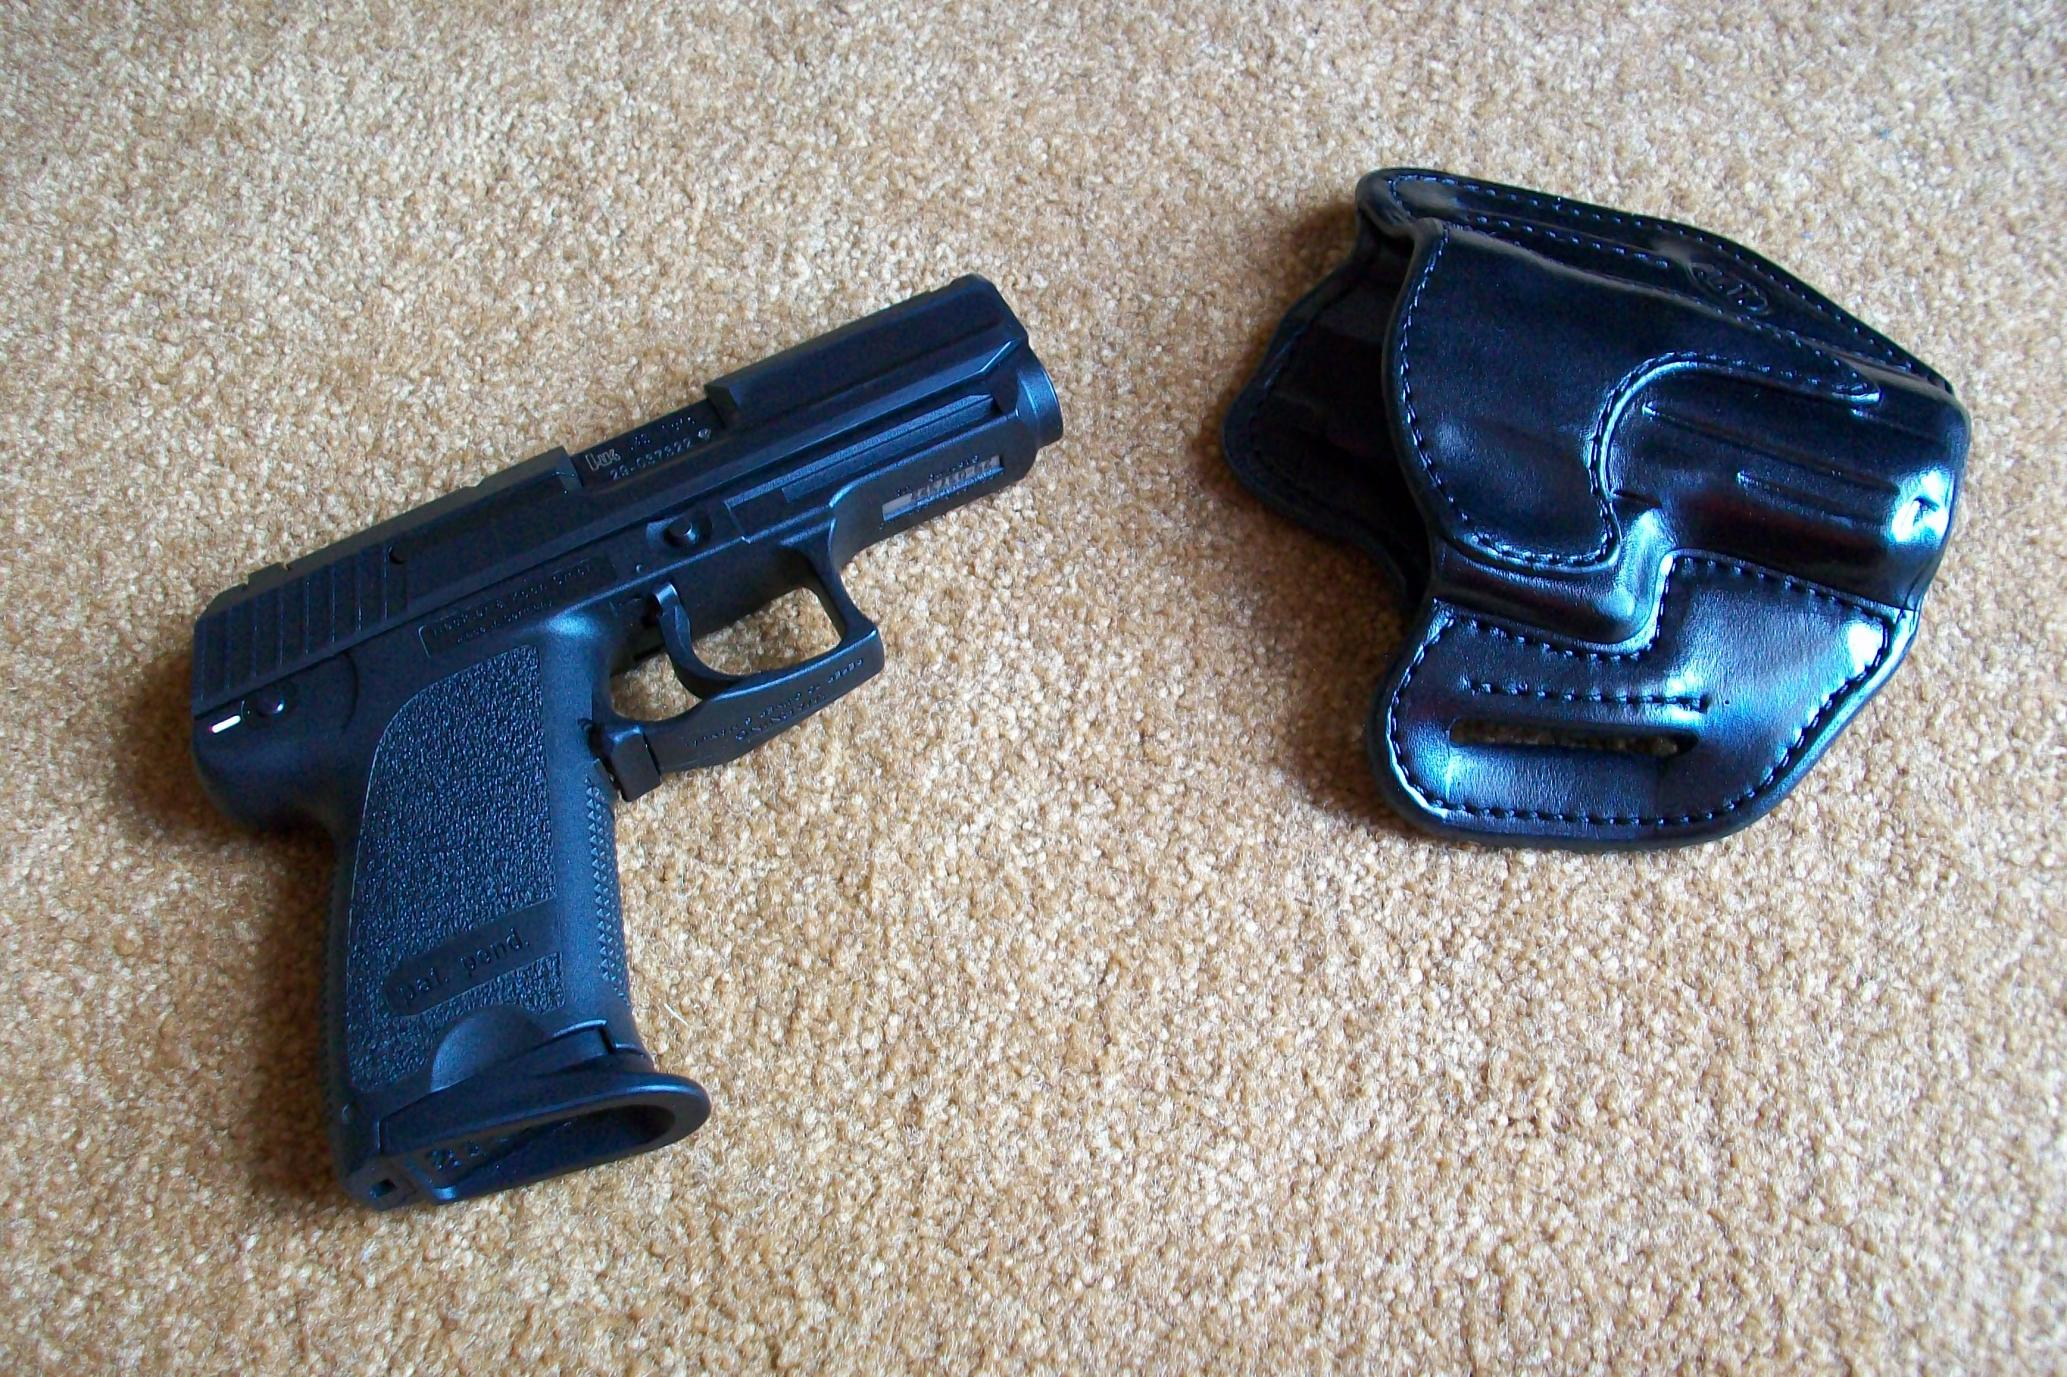 Holster for My HK USP Compact 45-000_0013.jpg